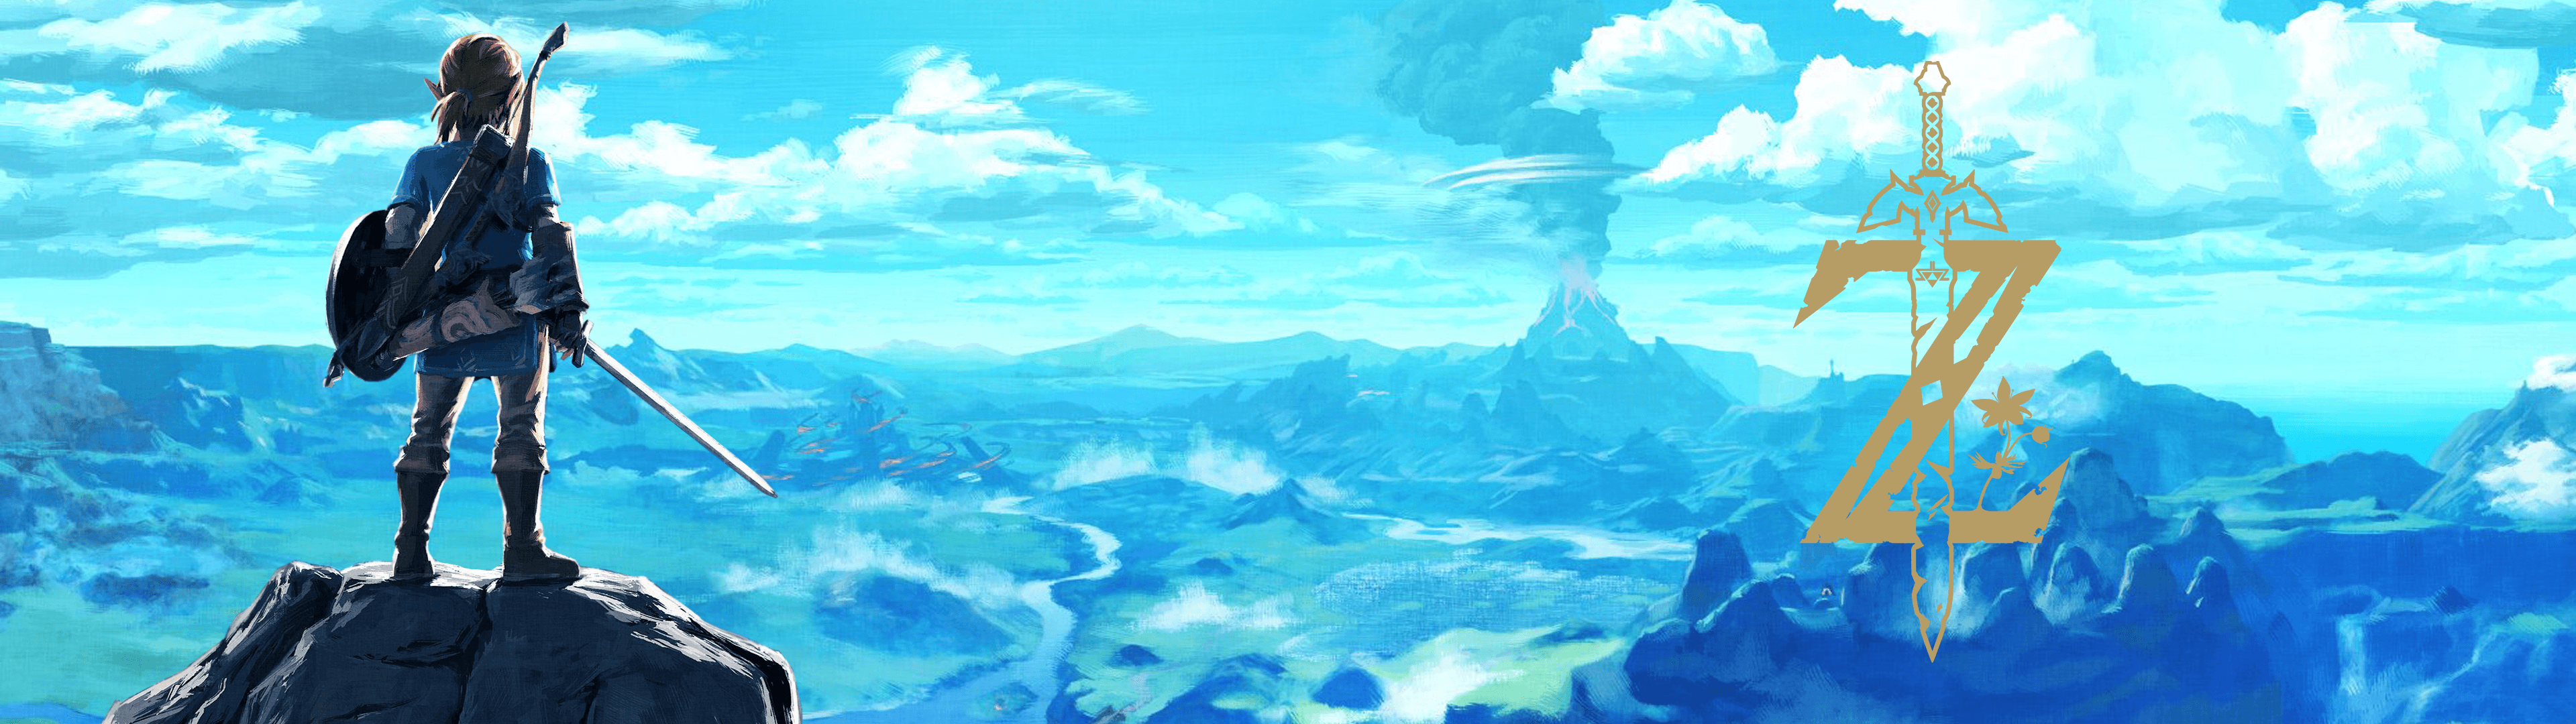 Legend Of Zelda Dual Monitor Wallpaper Posted By Ryan Mercado